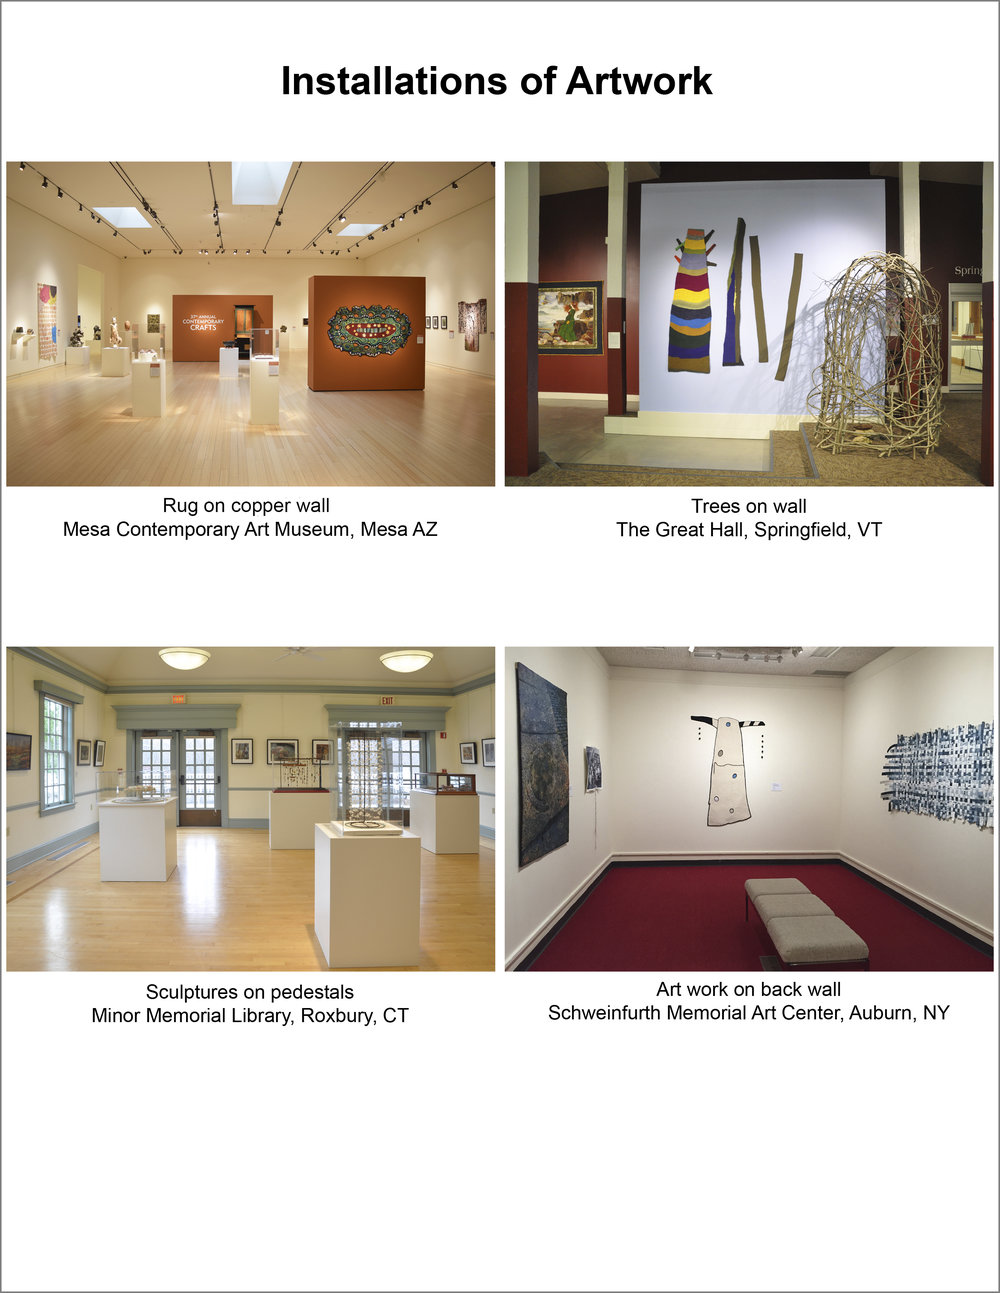 Artwork on Exhibit in Galleries